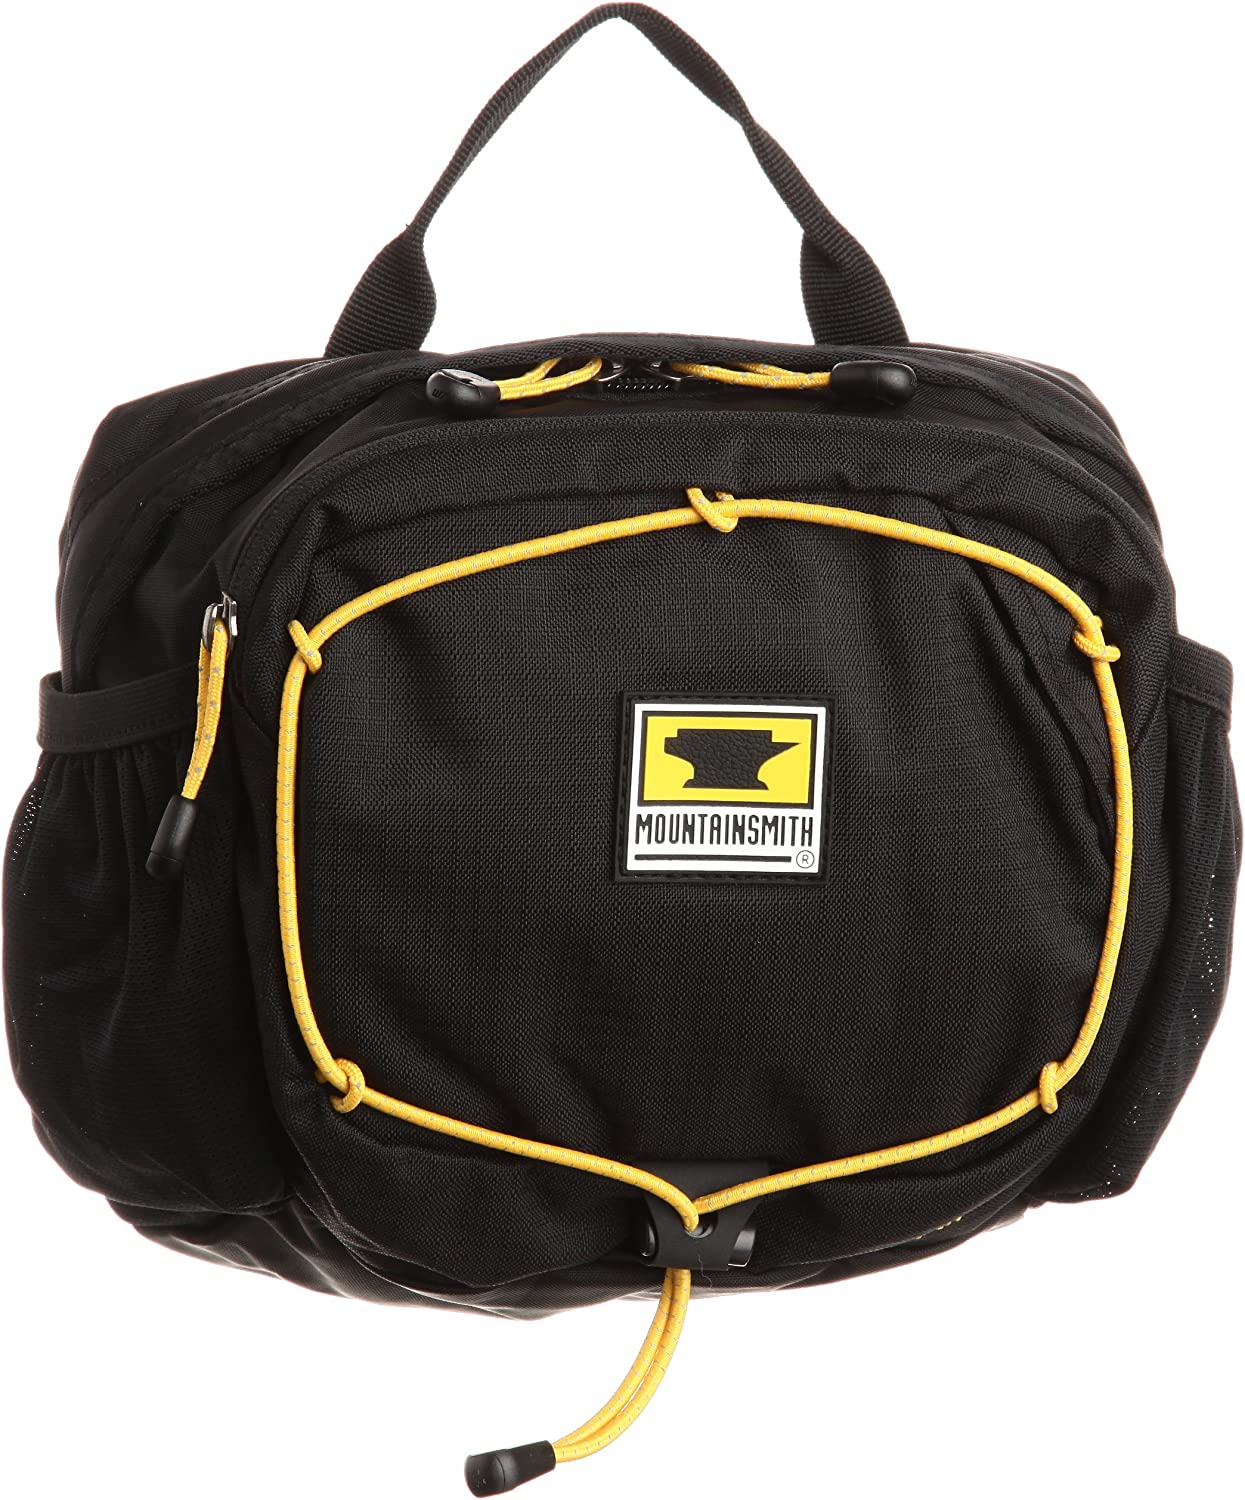 Mountainsmith Lumbar-Recycled Series Kinetic TLS R Backpack